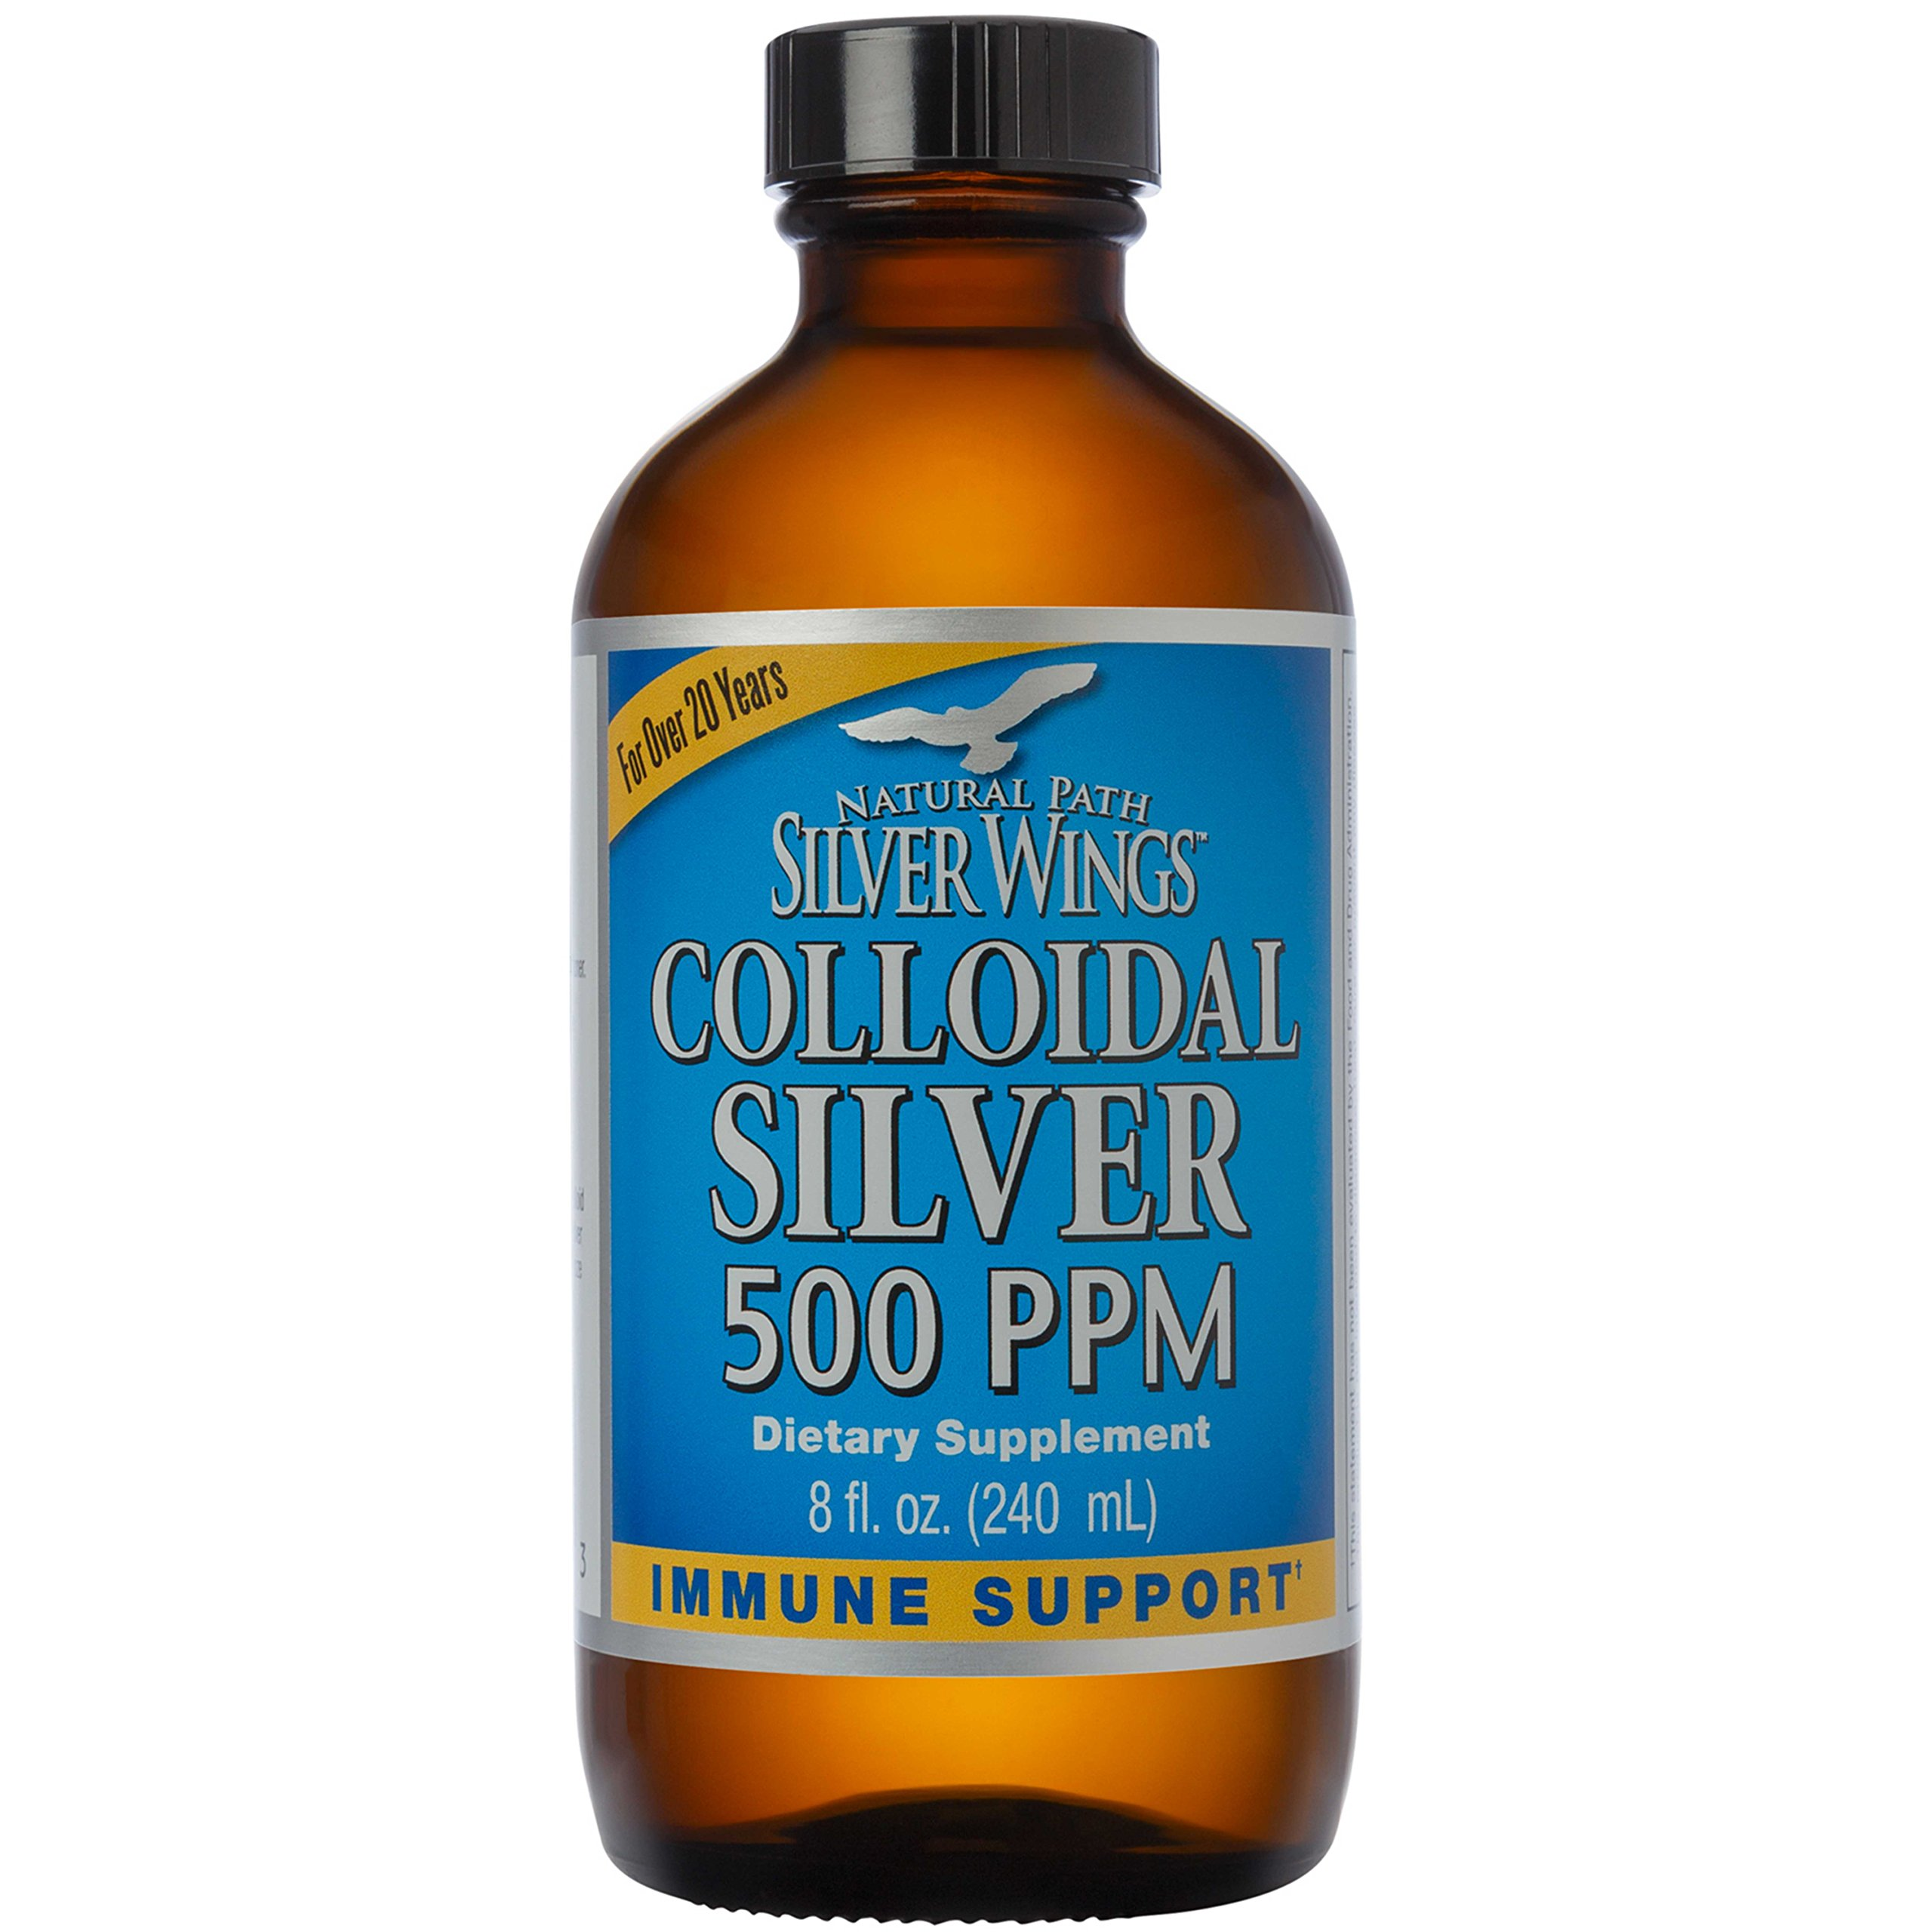 Natural Path Silver Wings - Colloidal Silver 500 ppm - Pure Mineral Supplement - Immune Support for Your Family - Powerful Healing without a Bad Taste (8 ounce,240ml) by Natural Path Silver Wings